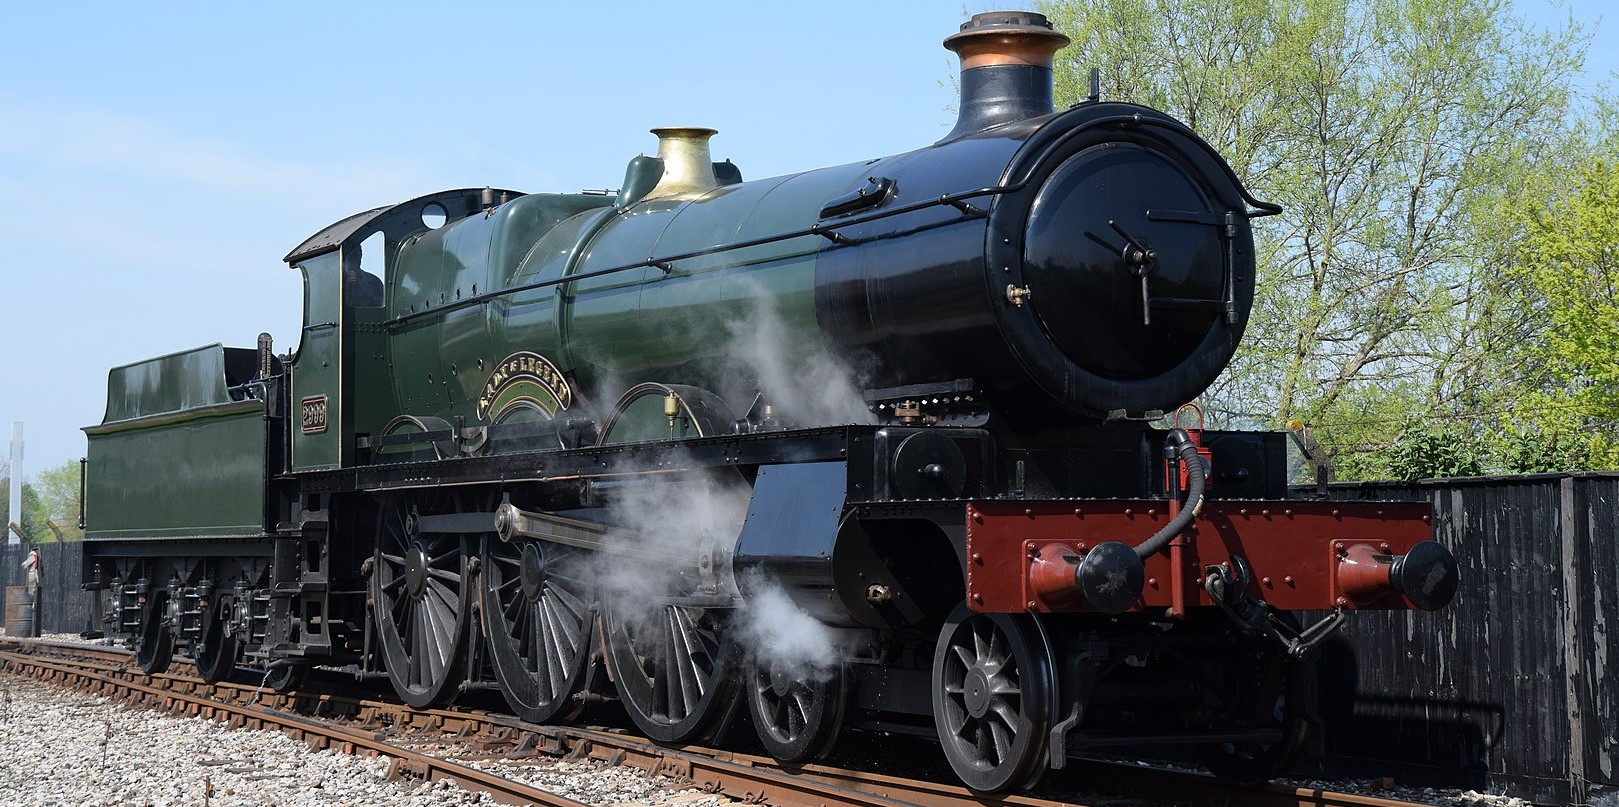 2999 'Lady of Legend' - replica locomotive at the Didcot Railway Centre in April 2019. ©Hugh Llewelyn